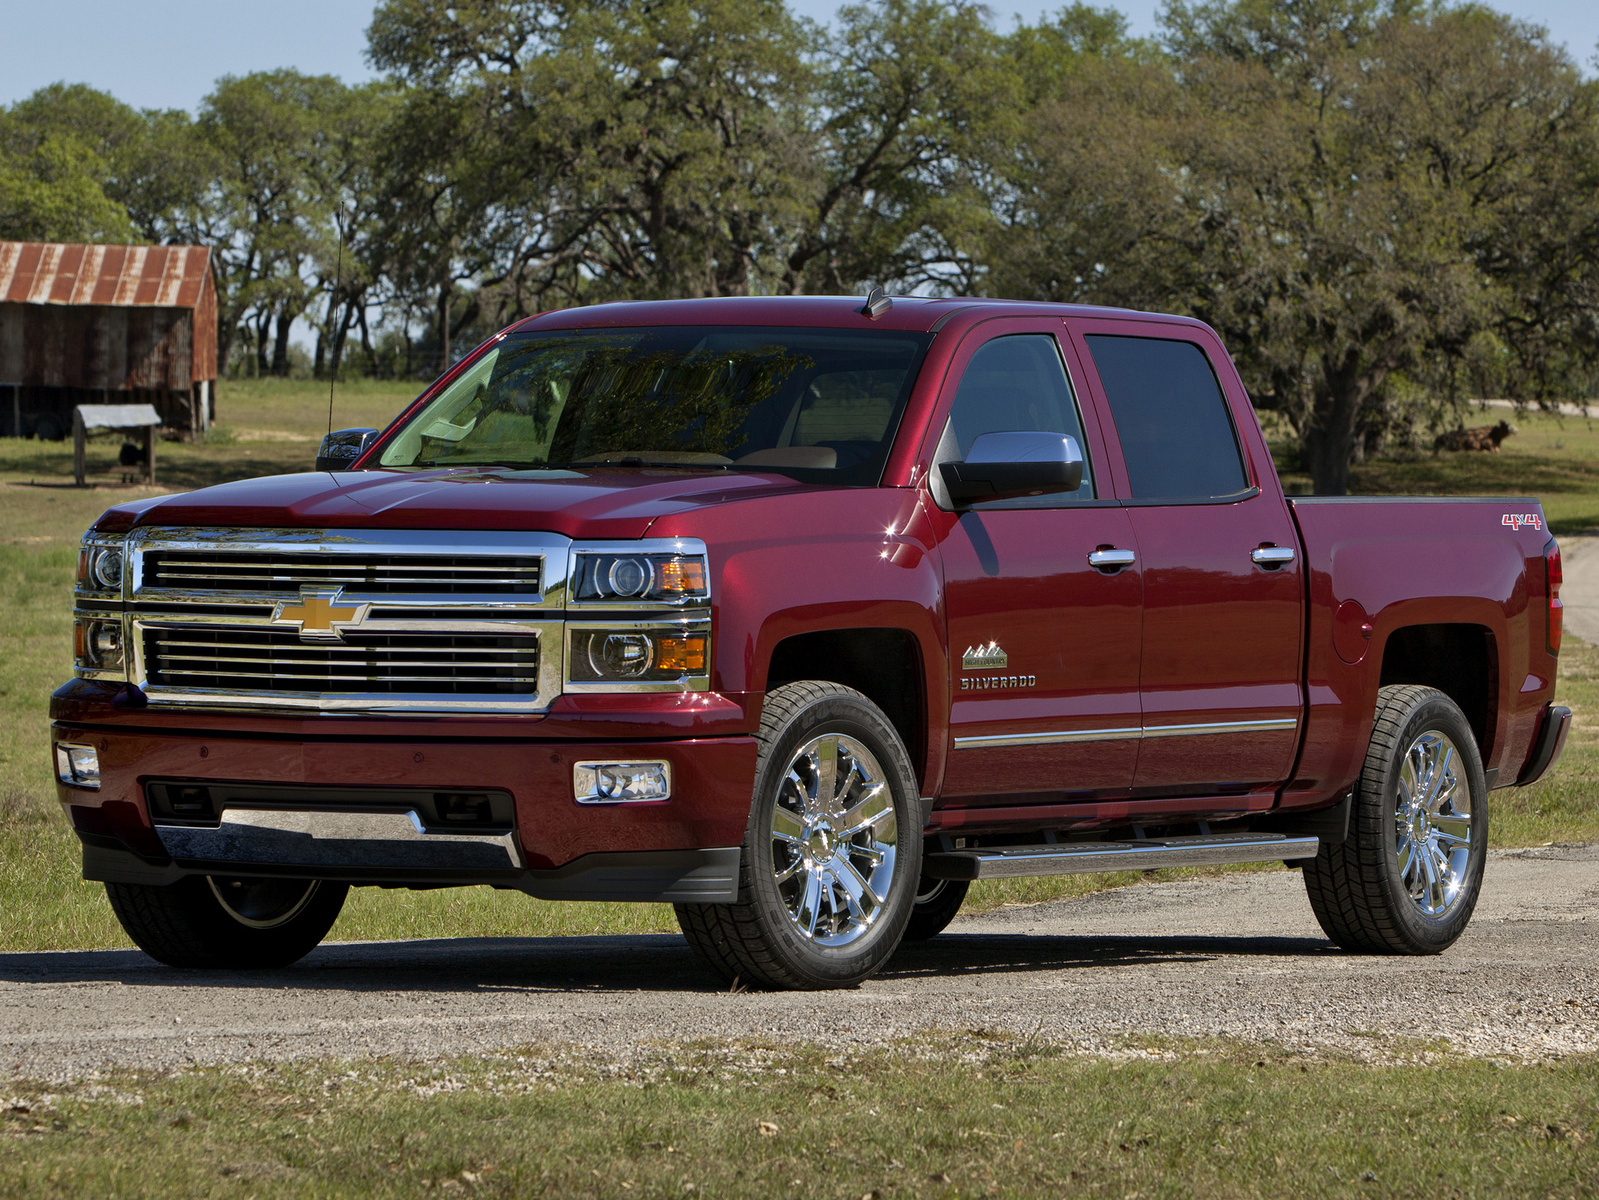 2014 chevrolet silverado 1500 ltz z71 4wd price specs. Black Bedroom Furniture Sets. Home Design Ideas